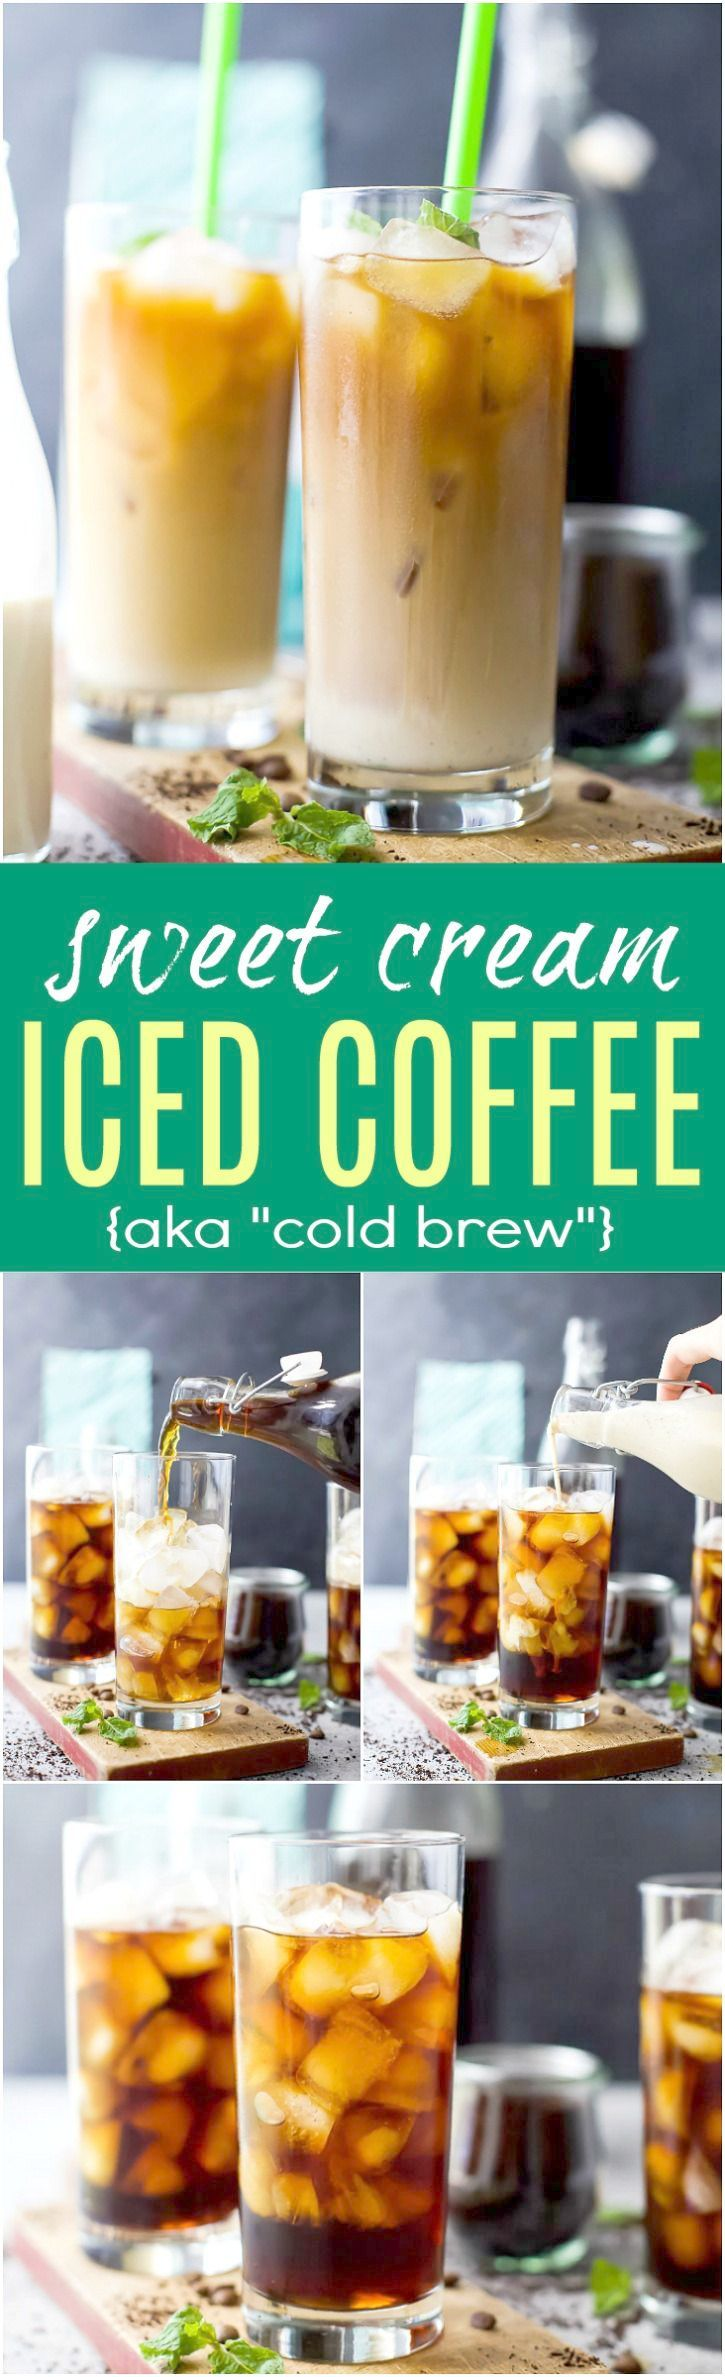 Iced Coffee Is So Easy To Make At Home And Even More Delicious Than You Can Buy At Starbucks Or Mc Iced Coffee At Home How To Make Ice Coffee Best